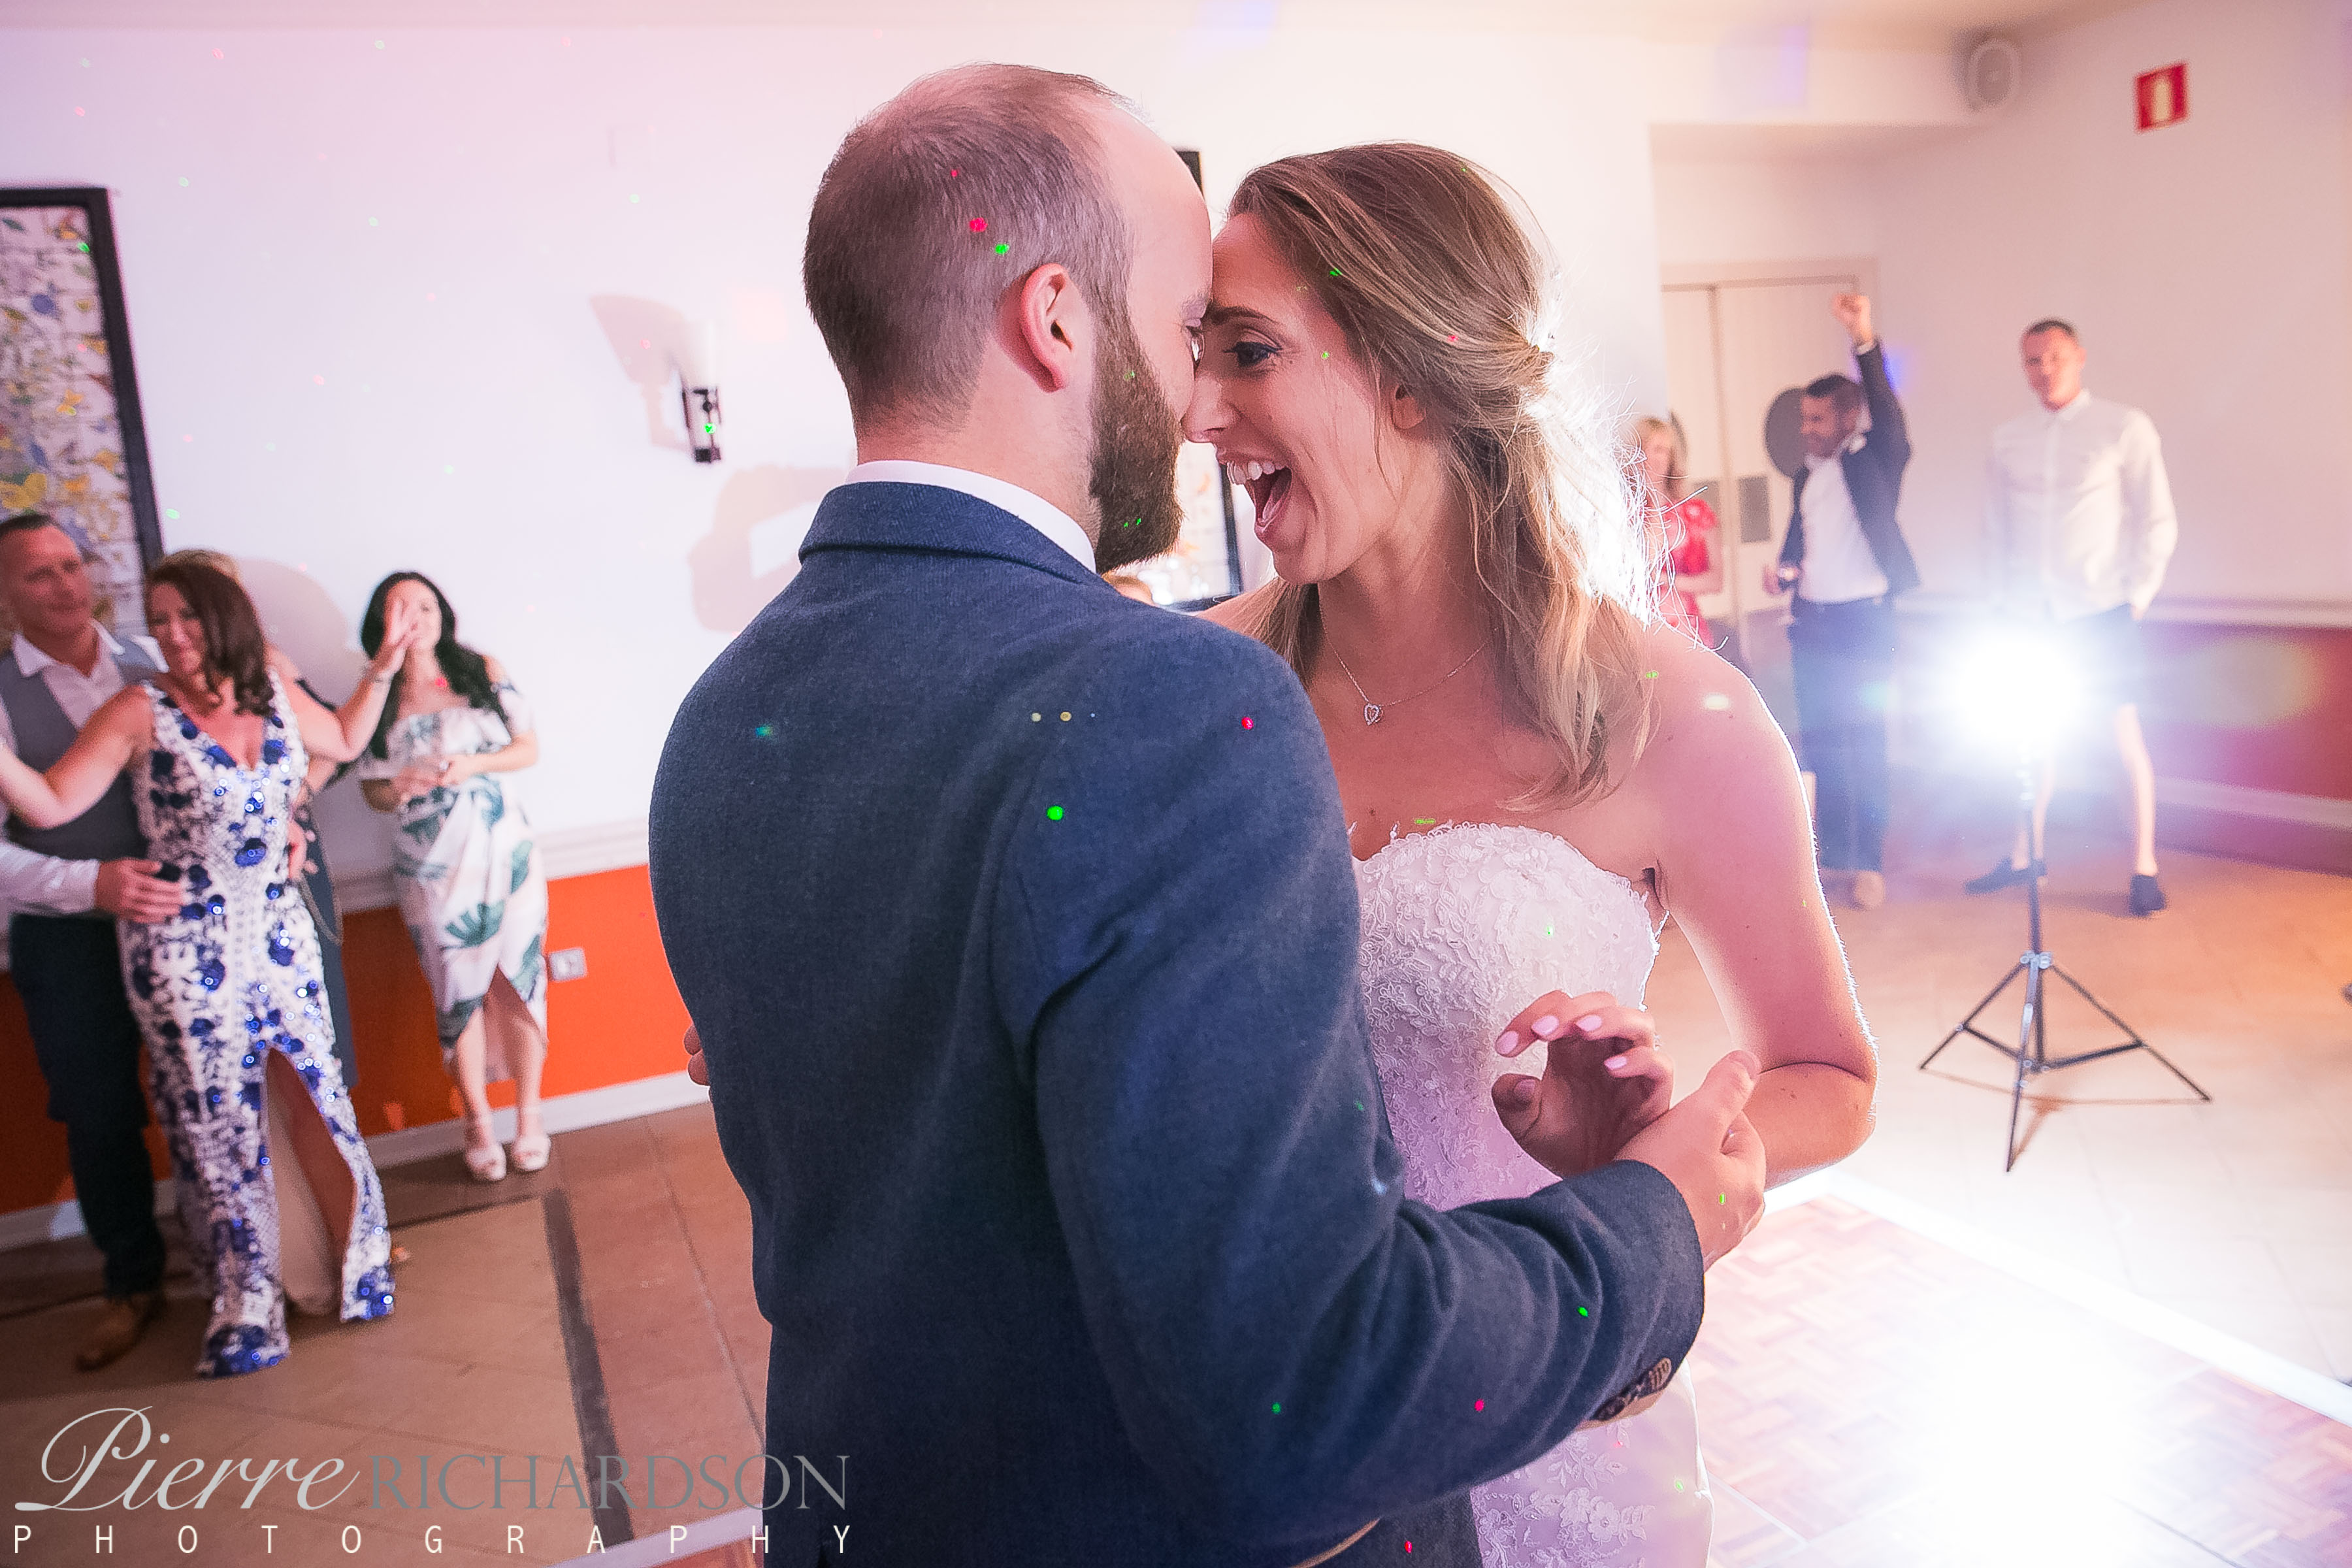 Wedding photography La Cala Resort Mijas 609